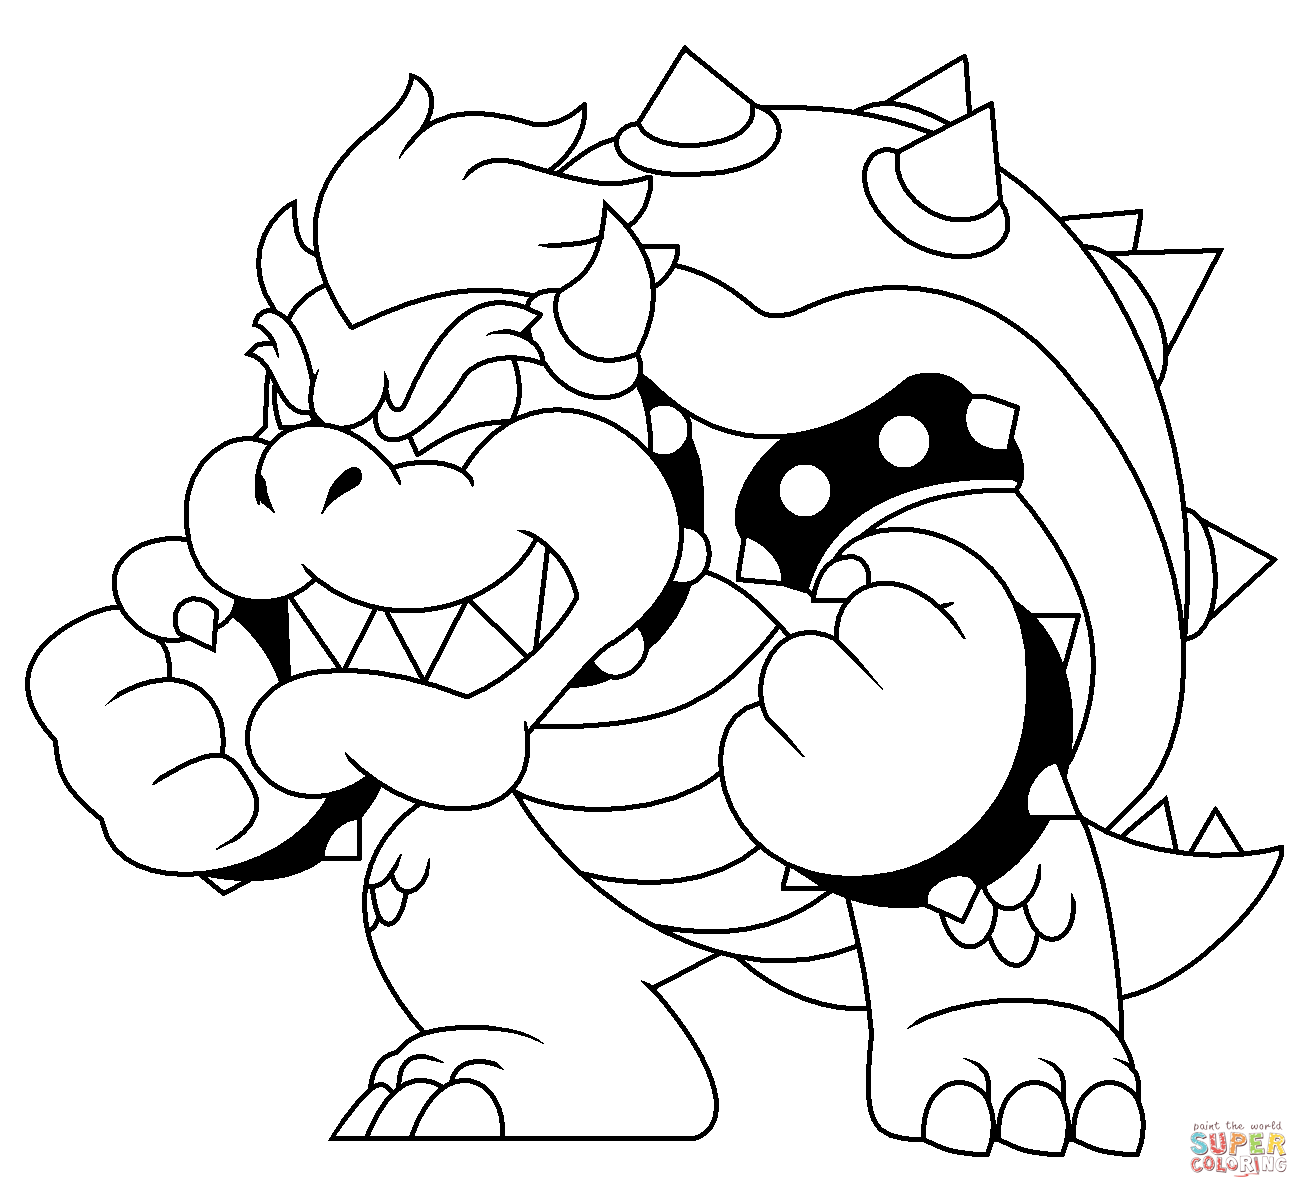 - Bowser Coloring Pages Online - Coloring Home